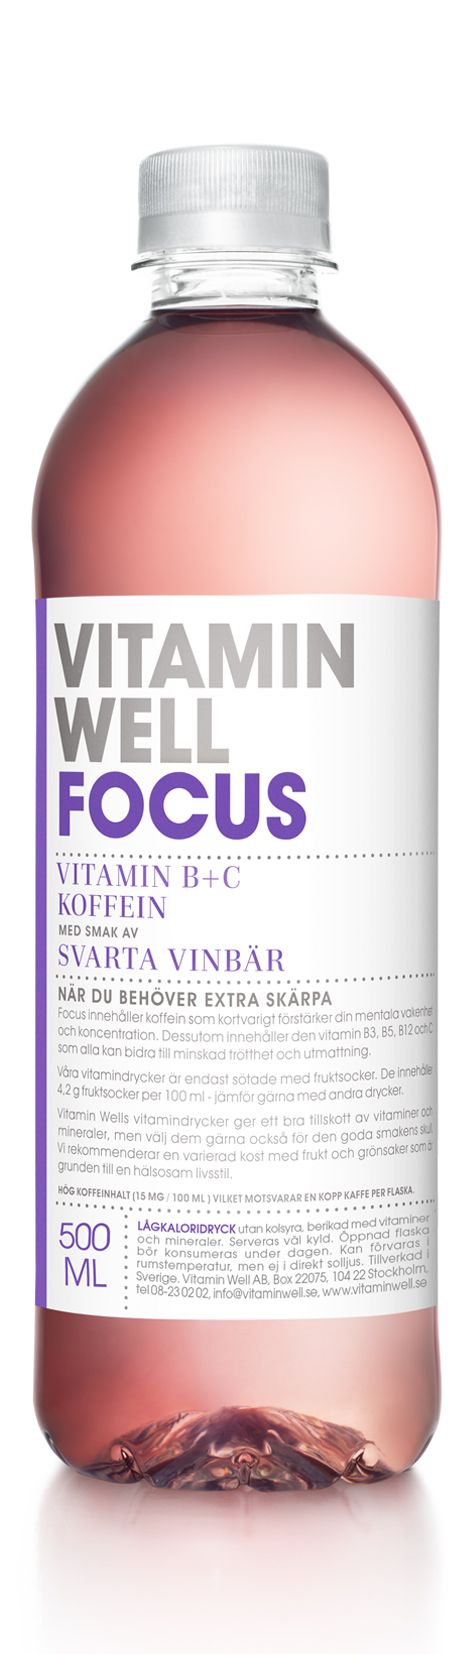 WHEN YOU NEED TO STAY SHARP - WITH A TASTE OF BLACKCURRANT Vitamin Focus contains caffeine, which helps to increase alertness, and improve concentration. It also contains vitamin C, B3, B5, B12 which can reduce tiredness and fatigue.